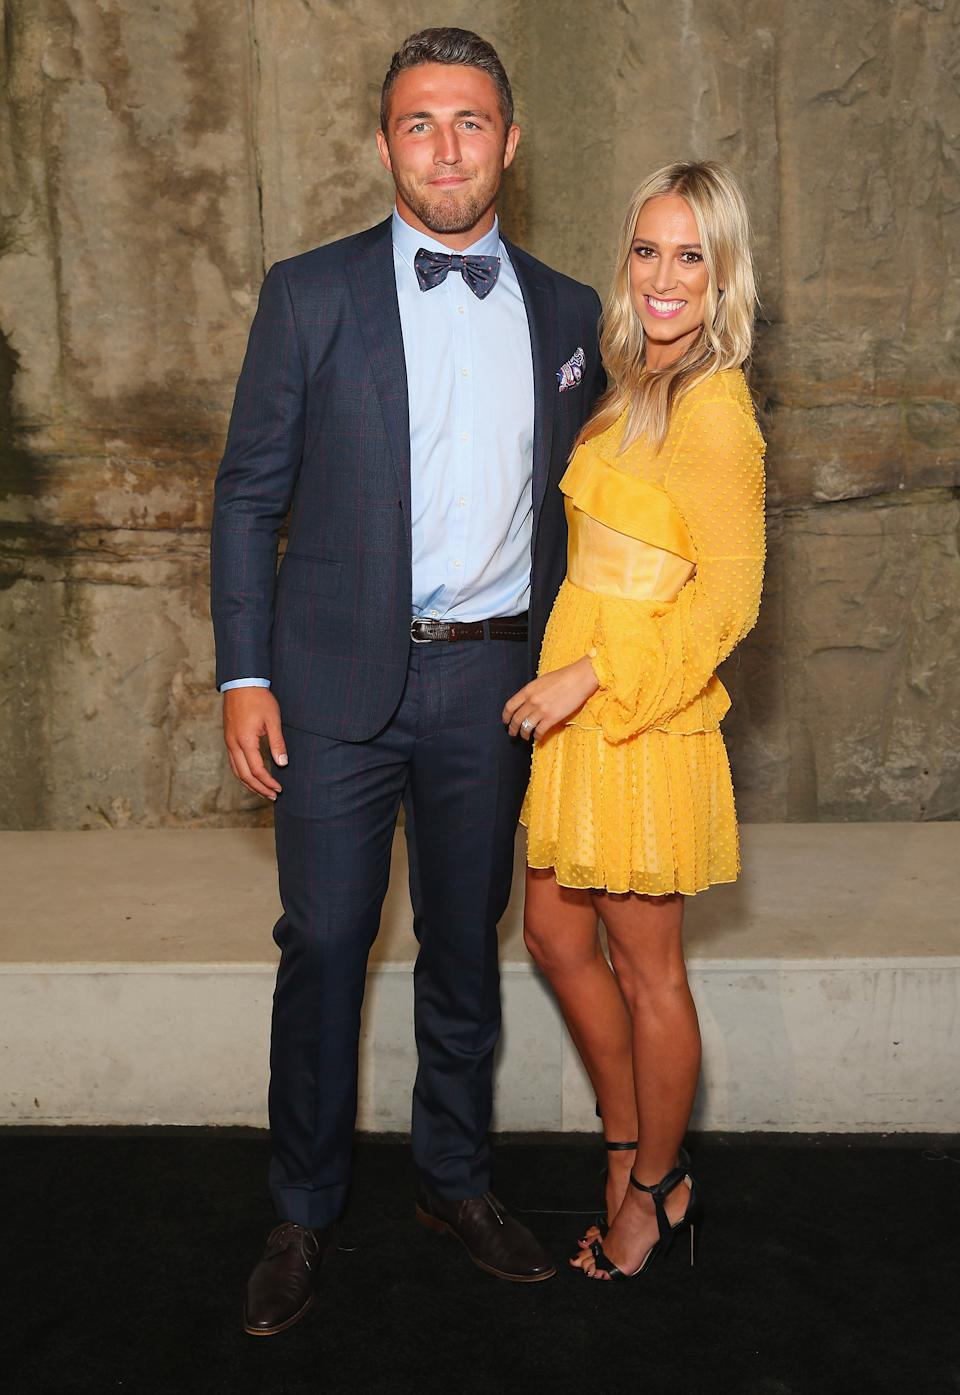 Sam and now-estranged wife Phoebe Burgess attend an event together in 2016.